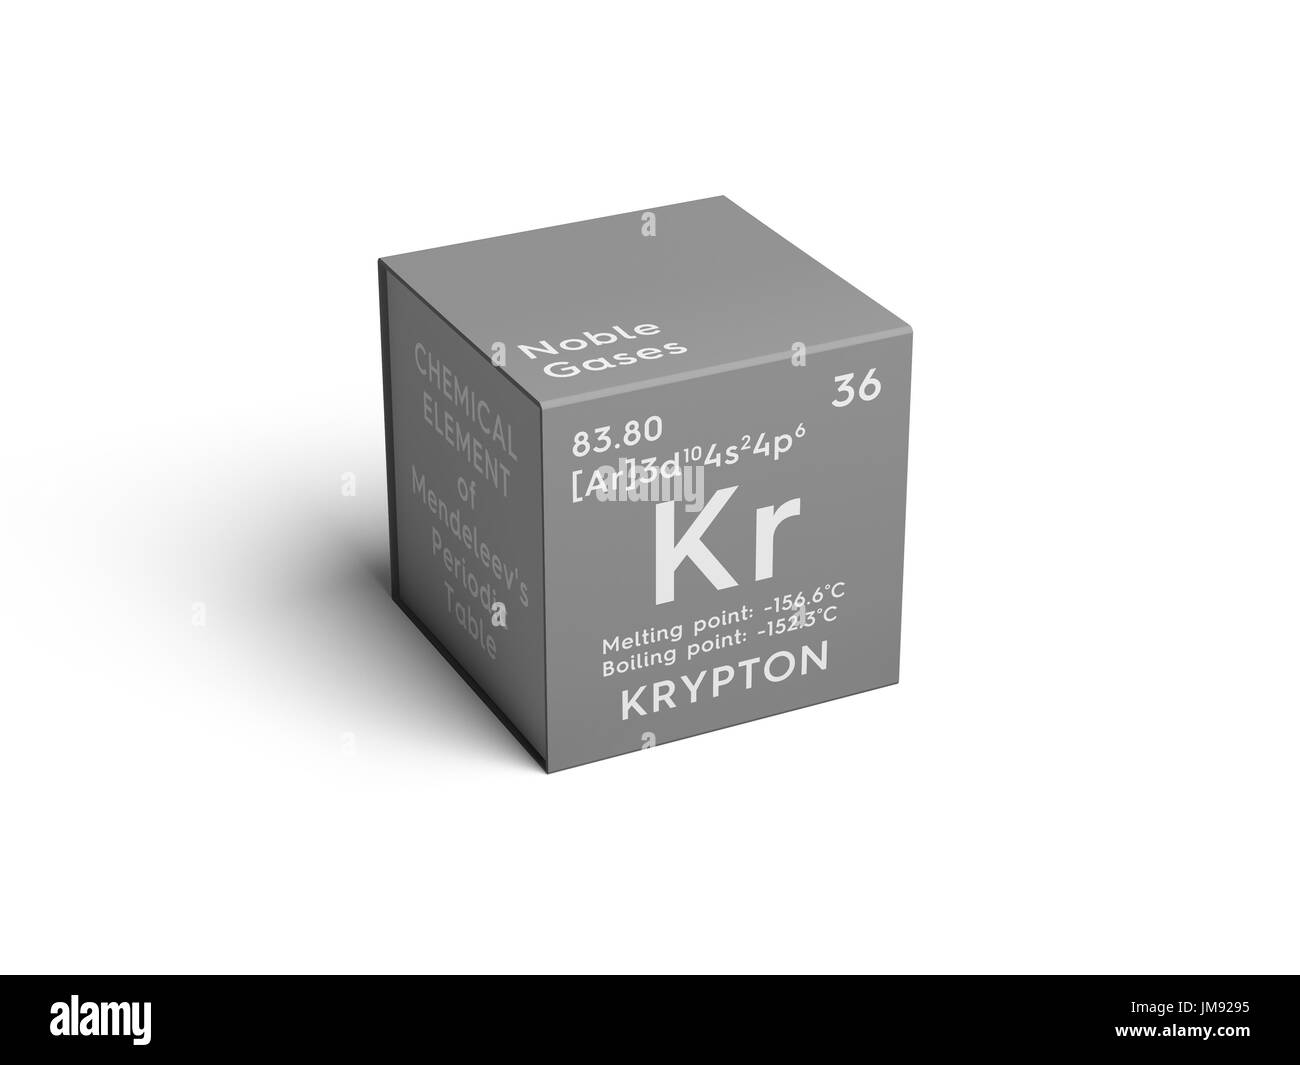 Krypton noble gases chemical element of mendeleevs periodic krypton noble gases chemical element of mendeleevs periodic table krypton in square cube creative concept buycottarizona